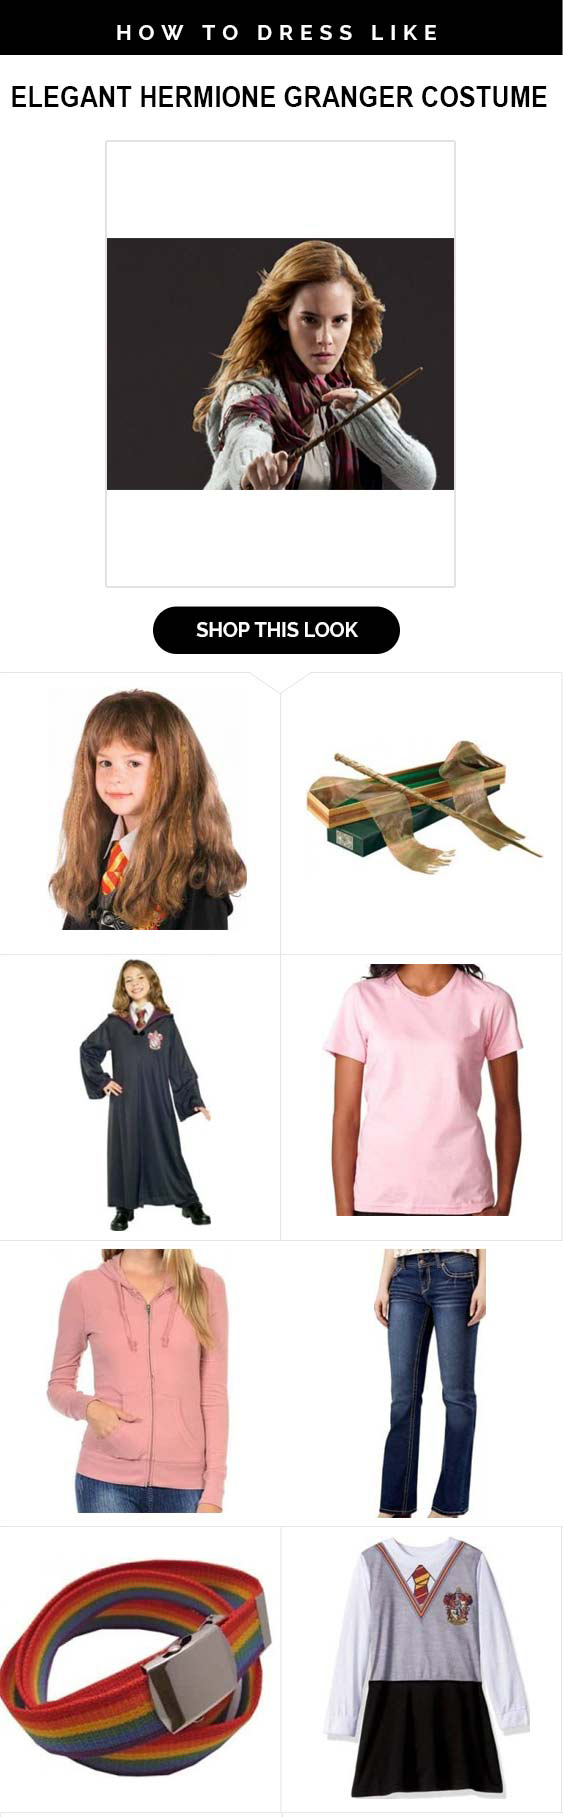 Become The Clever Gryffindor Witch With Hermione Granger Costume